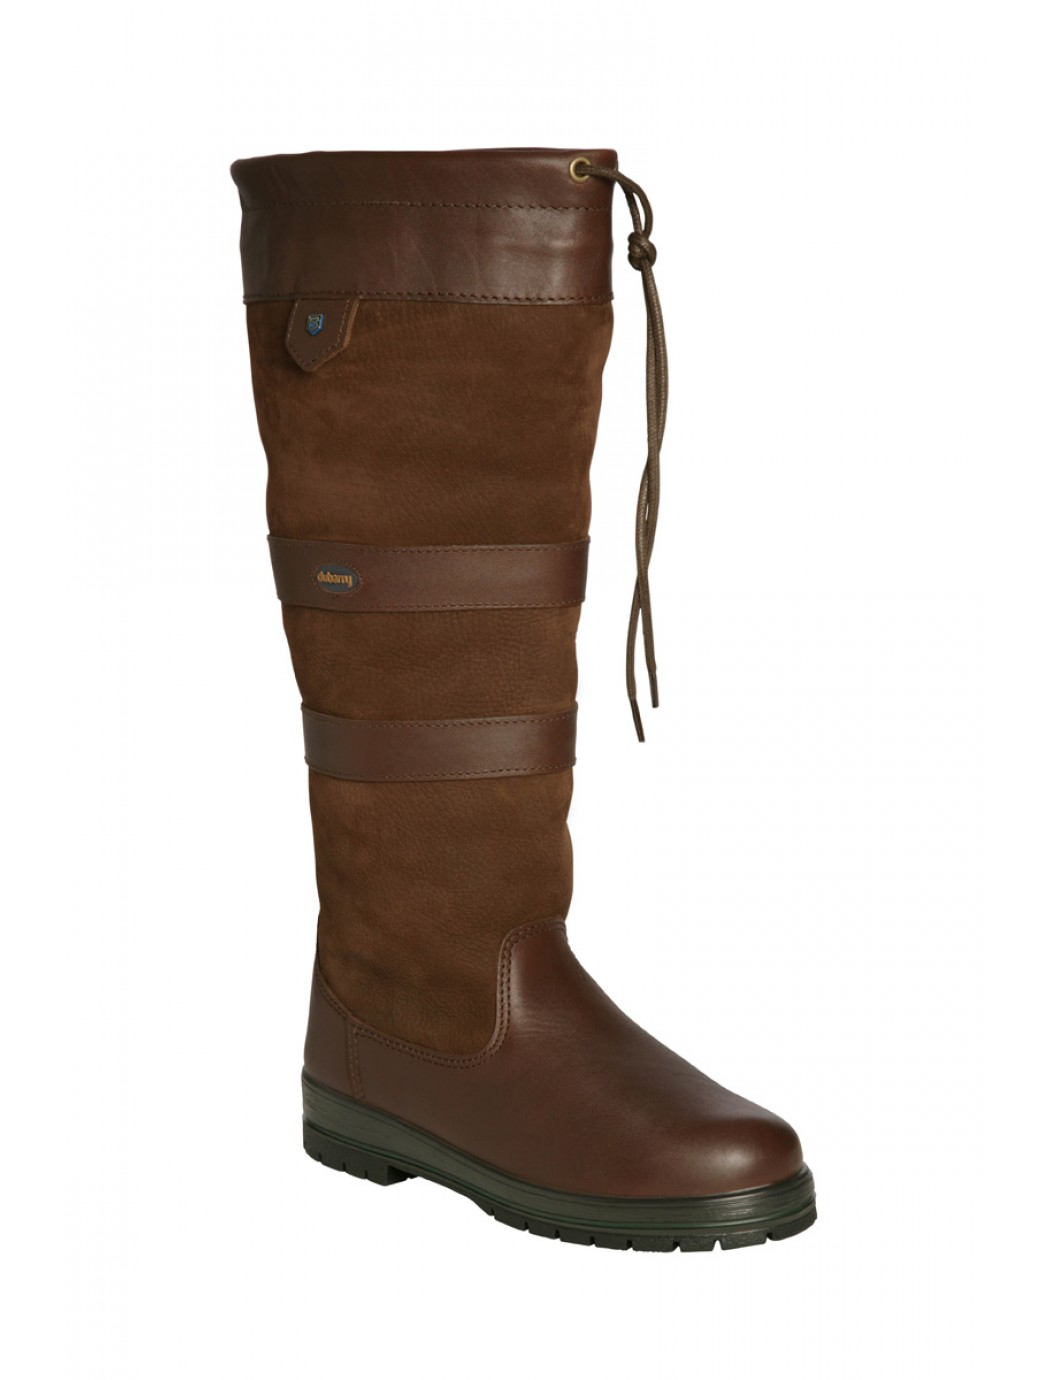 fashion for dubarry boots